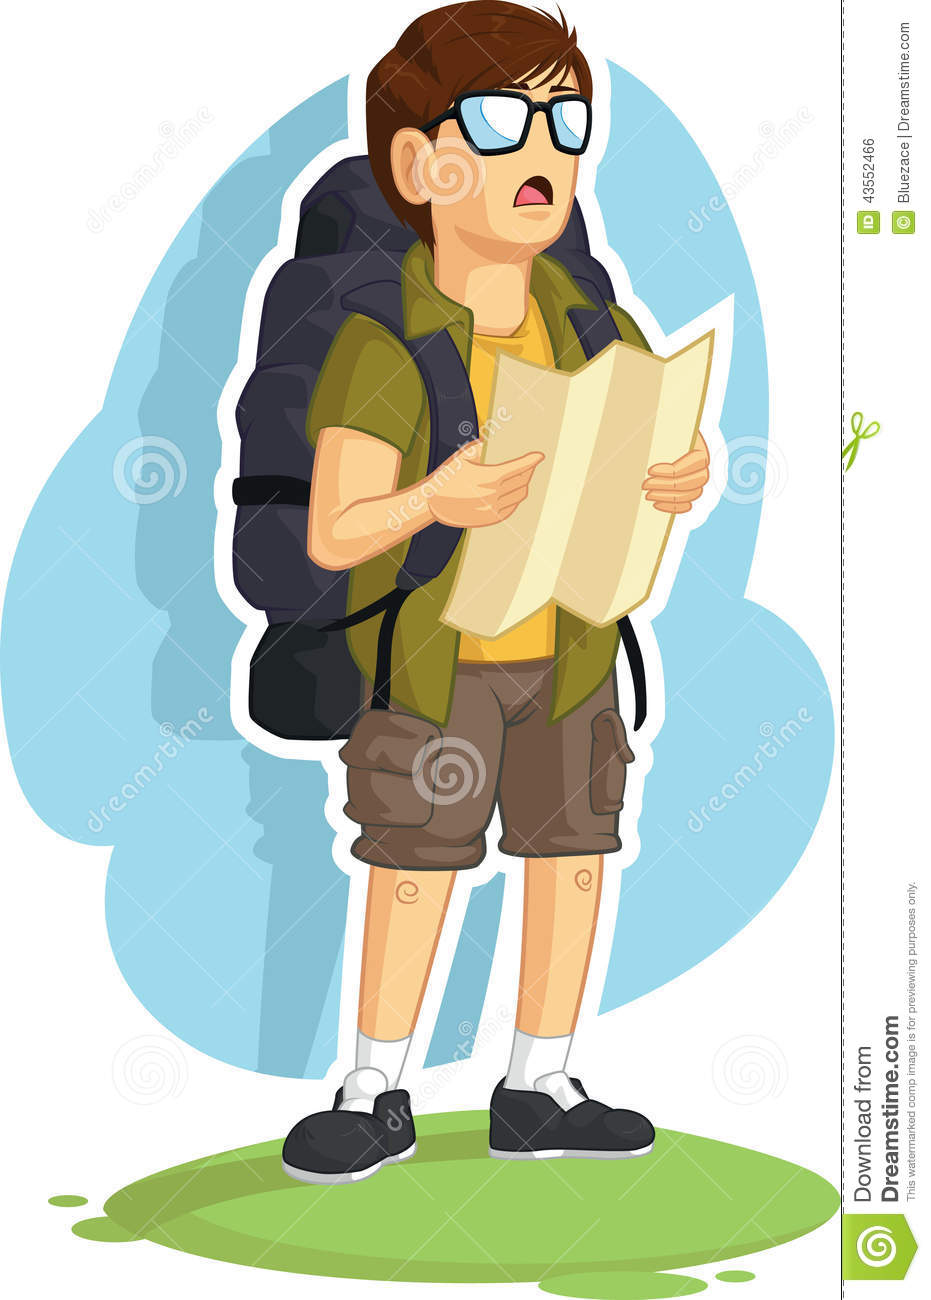 map reading comp with Stock Illustration Backpacker Boy Reading Road Map Vector Image Travelling Drawn Cartoon Style Vector Very Good Design Image43552466 on Unit Three 1750 1914 in addition F 12 Pics furthermore J 20 Pics as well Stock Photo A Woodland Park Information Board And Map 23824860 additionally F 22 Pics.